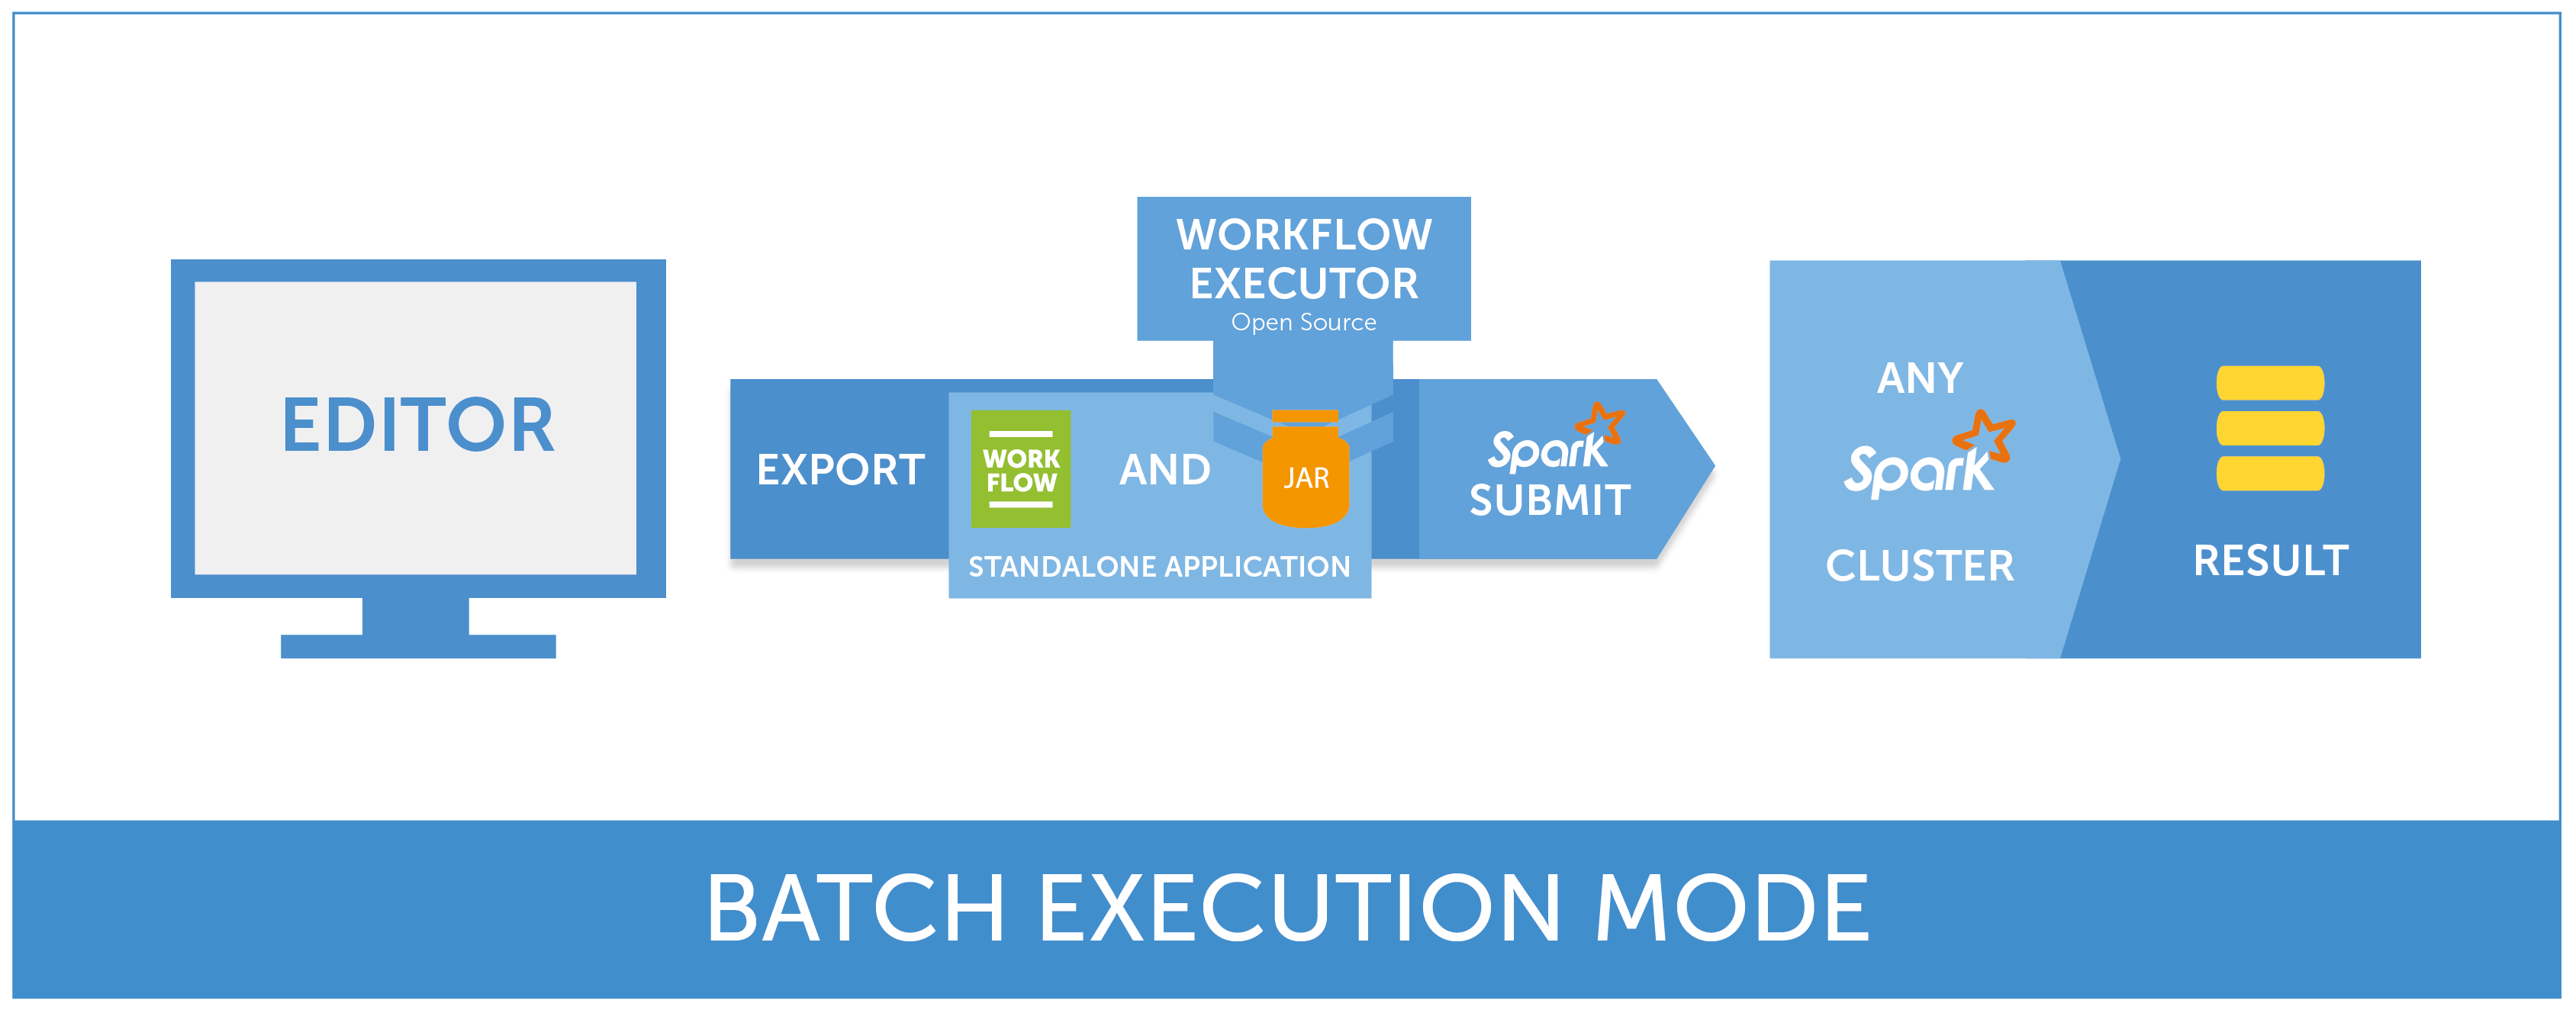 Seahorse Batch Workflow Executor Overview